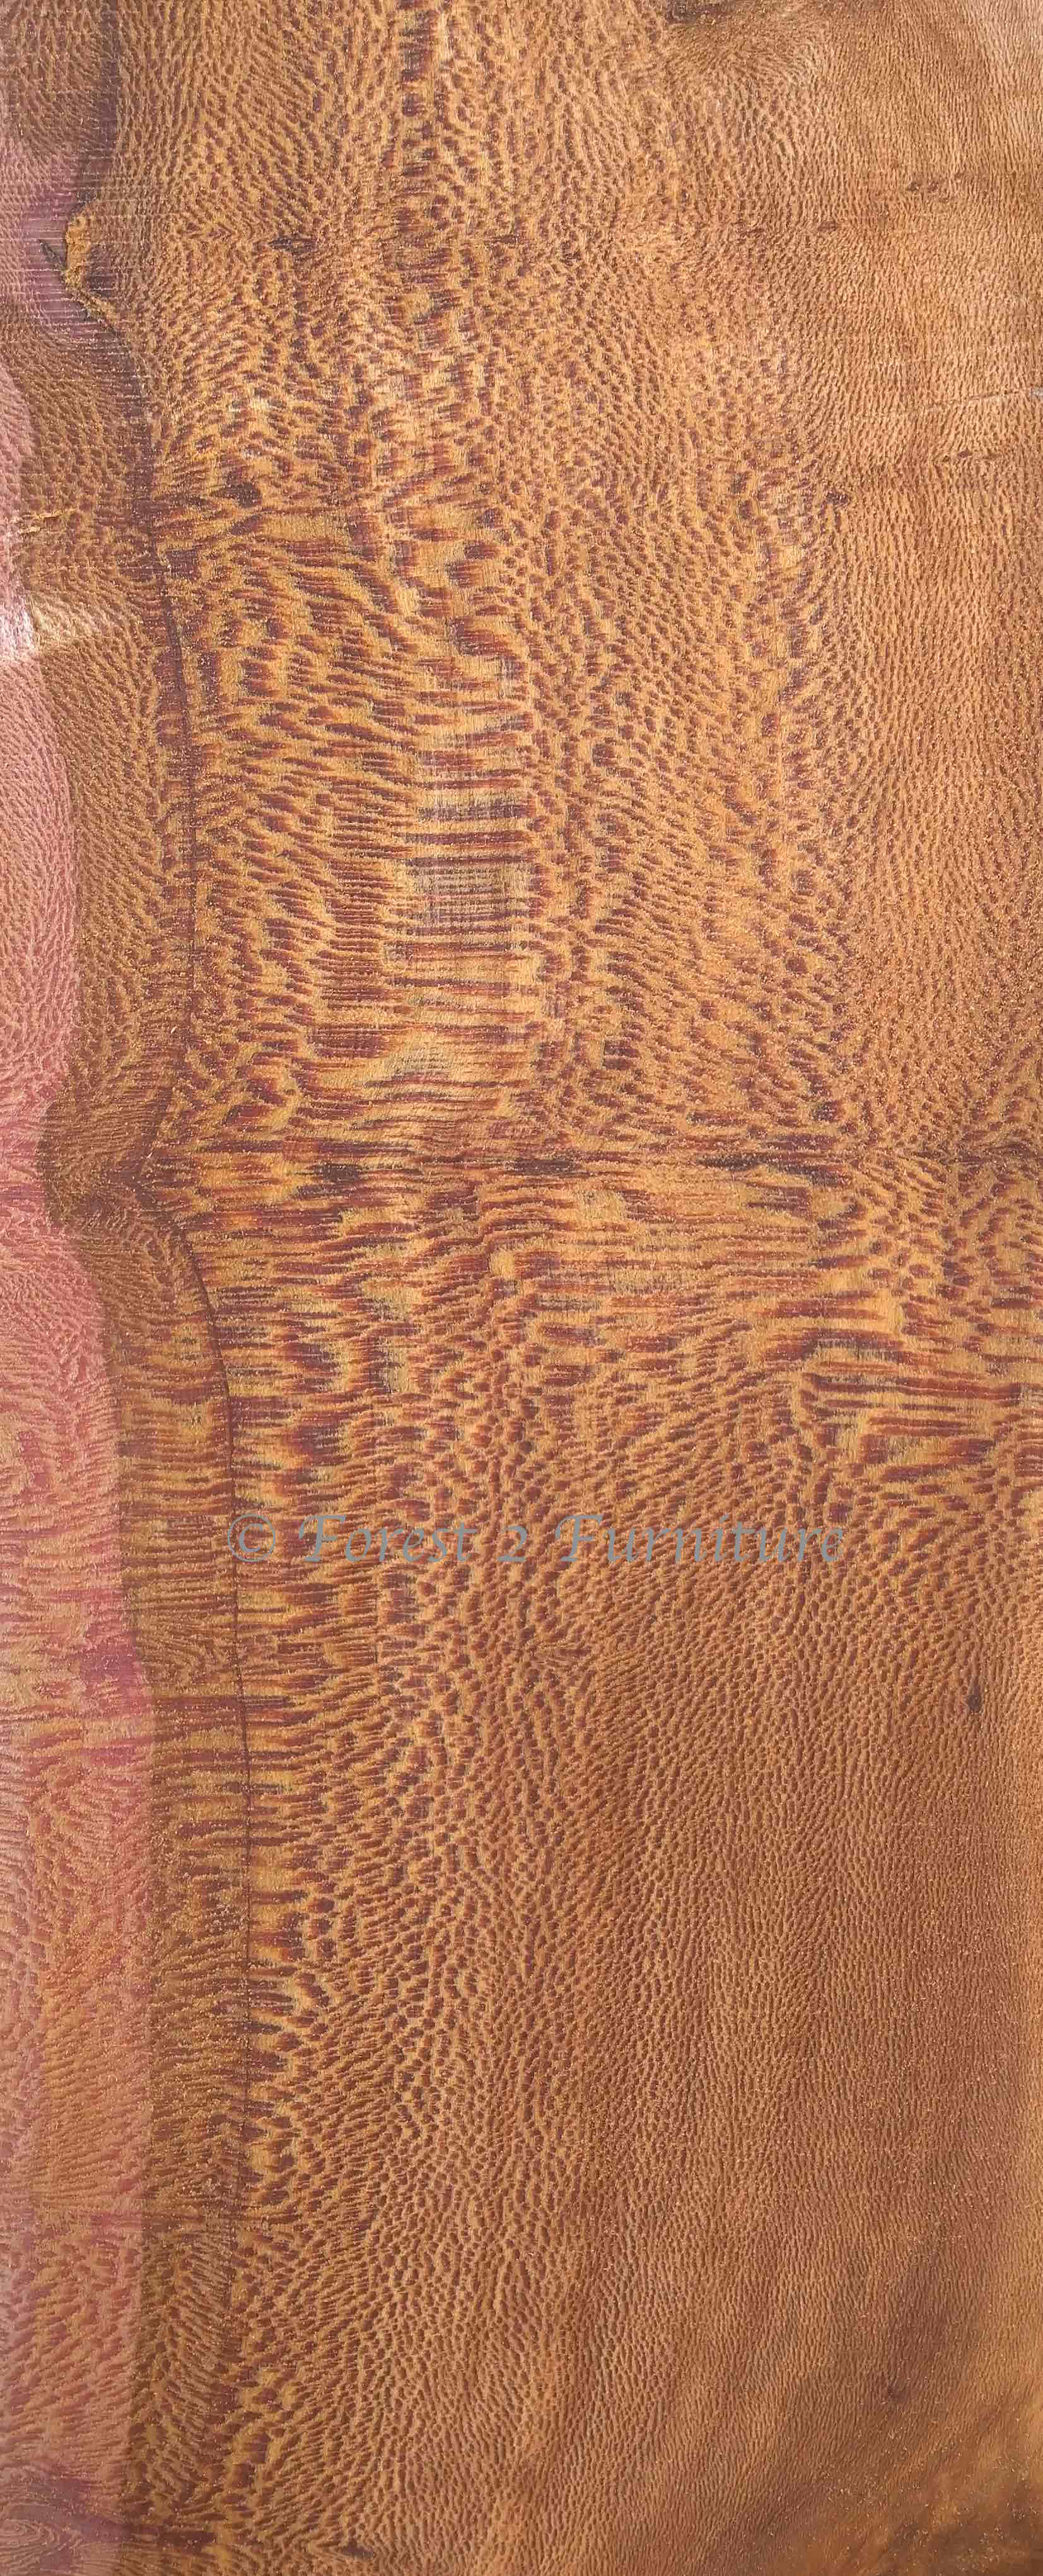 Turning the log creates figured boards known as Lacewood